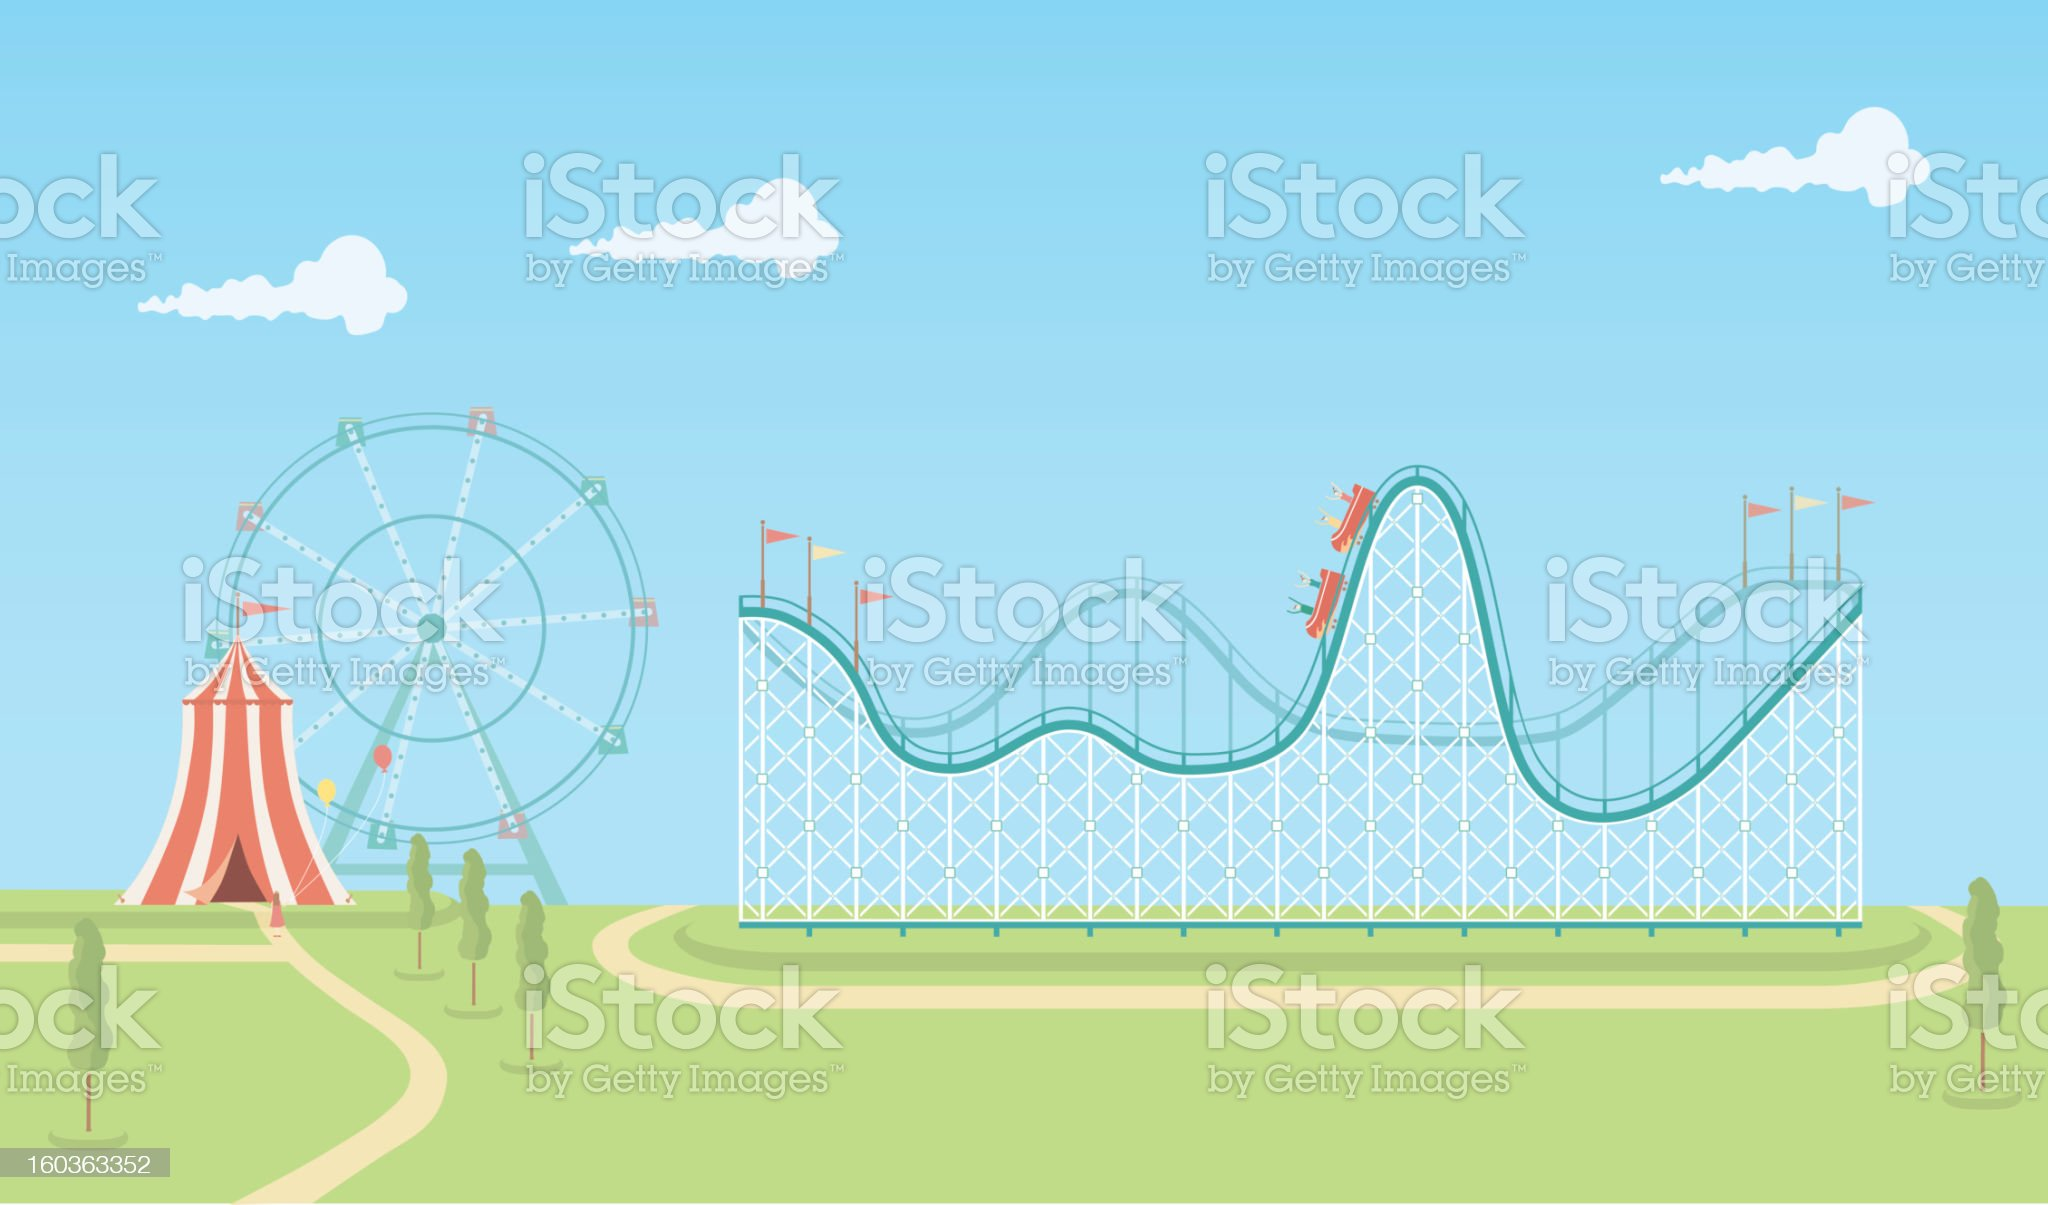 Illustration of roller coaster and ferris wheel royalty-free stock vector art